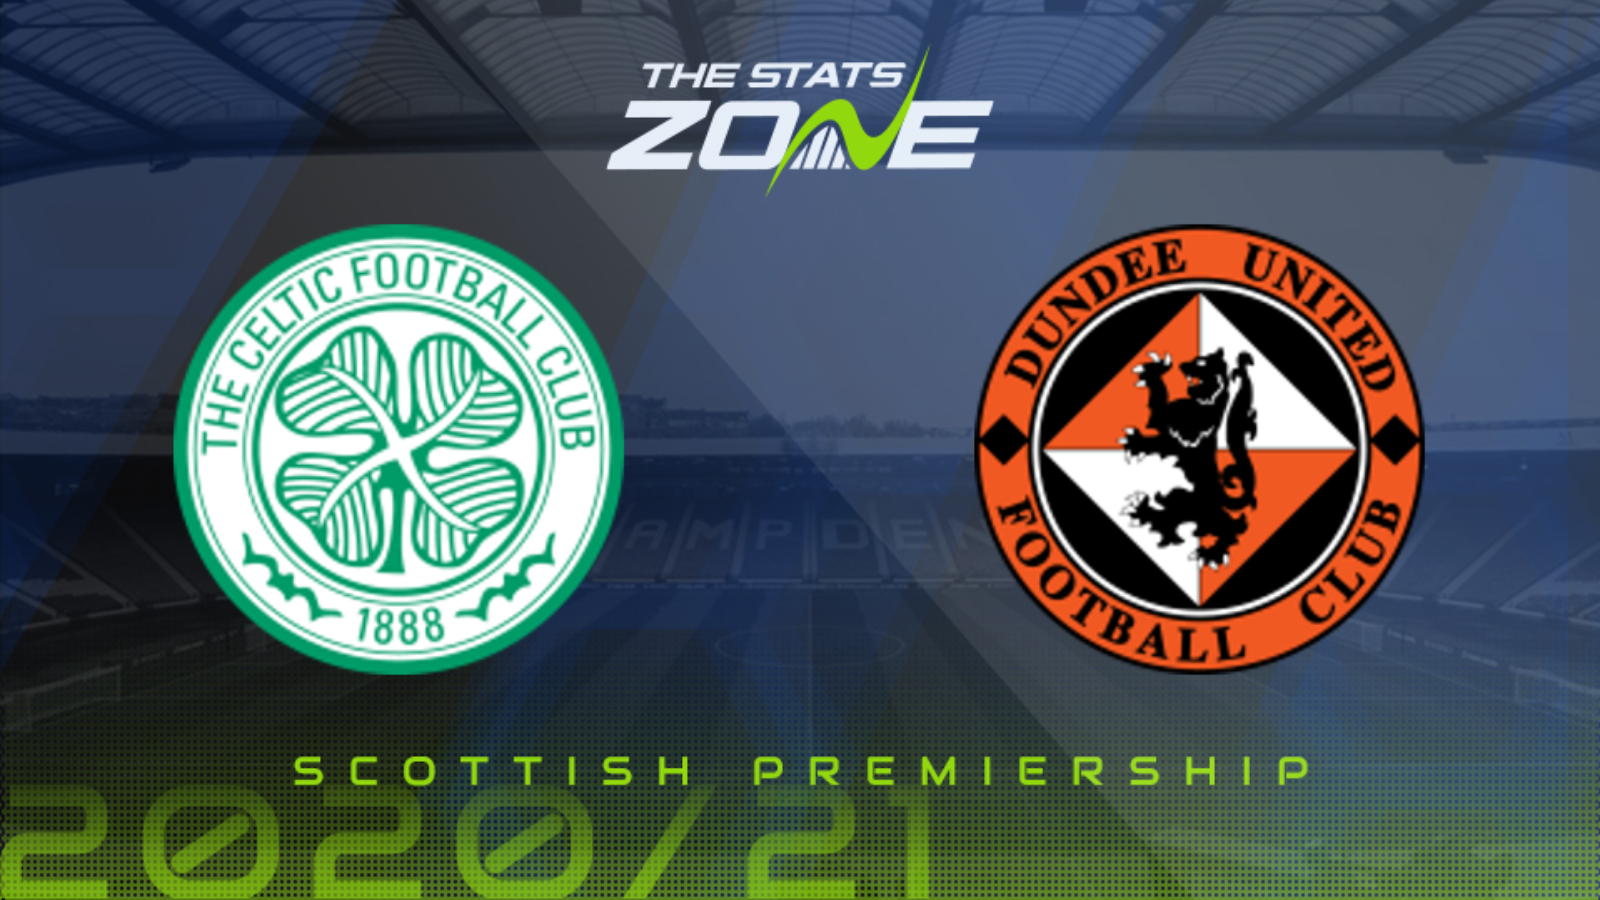 Dundee united vs celtic betting previews in match betting darts corner